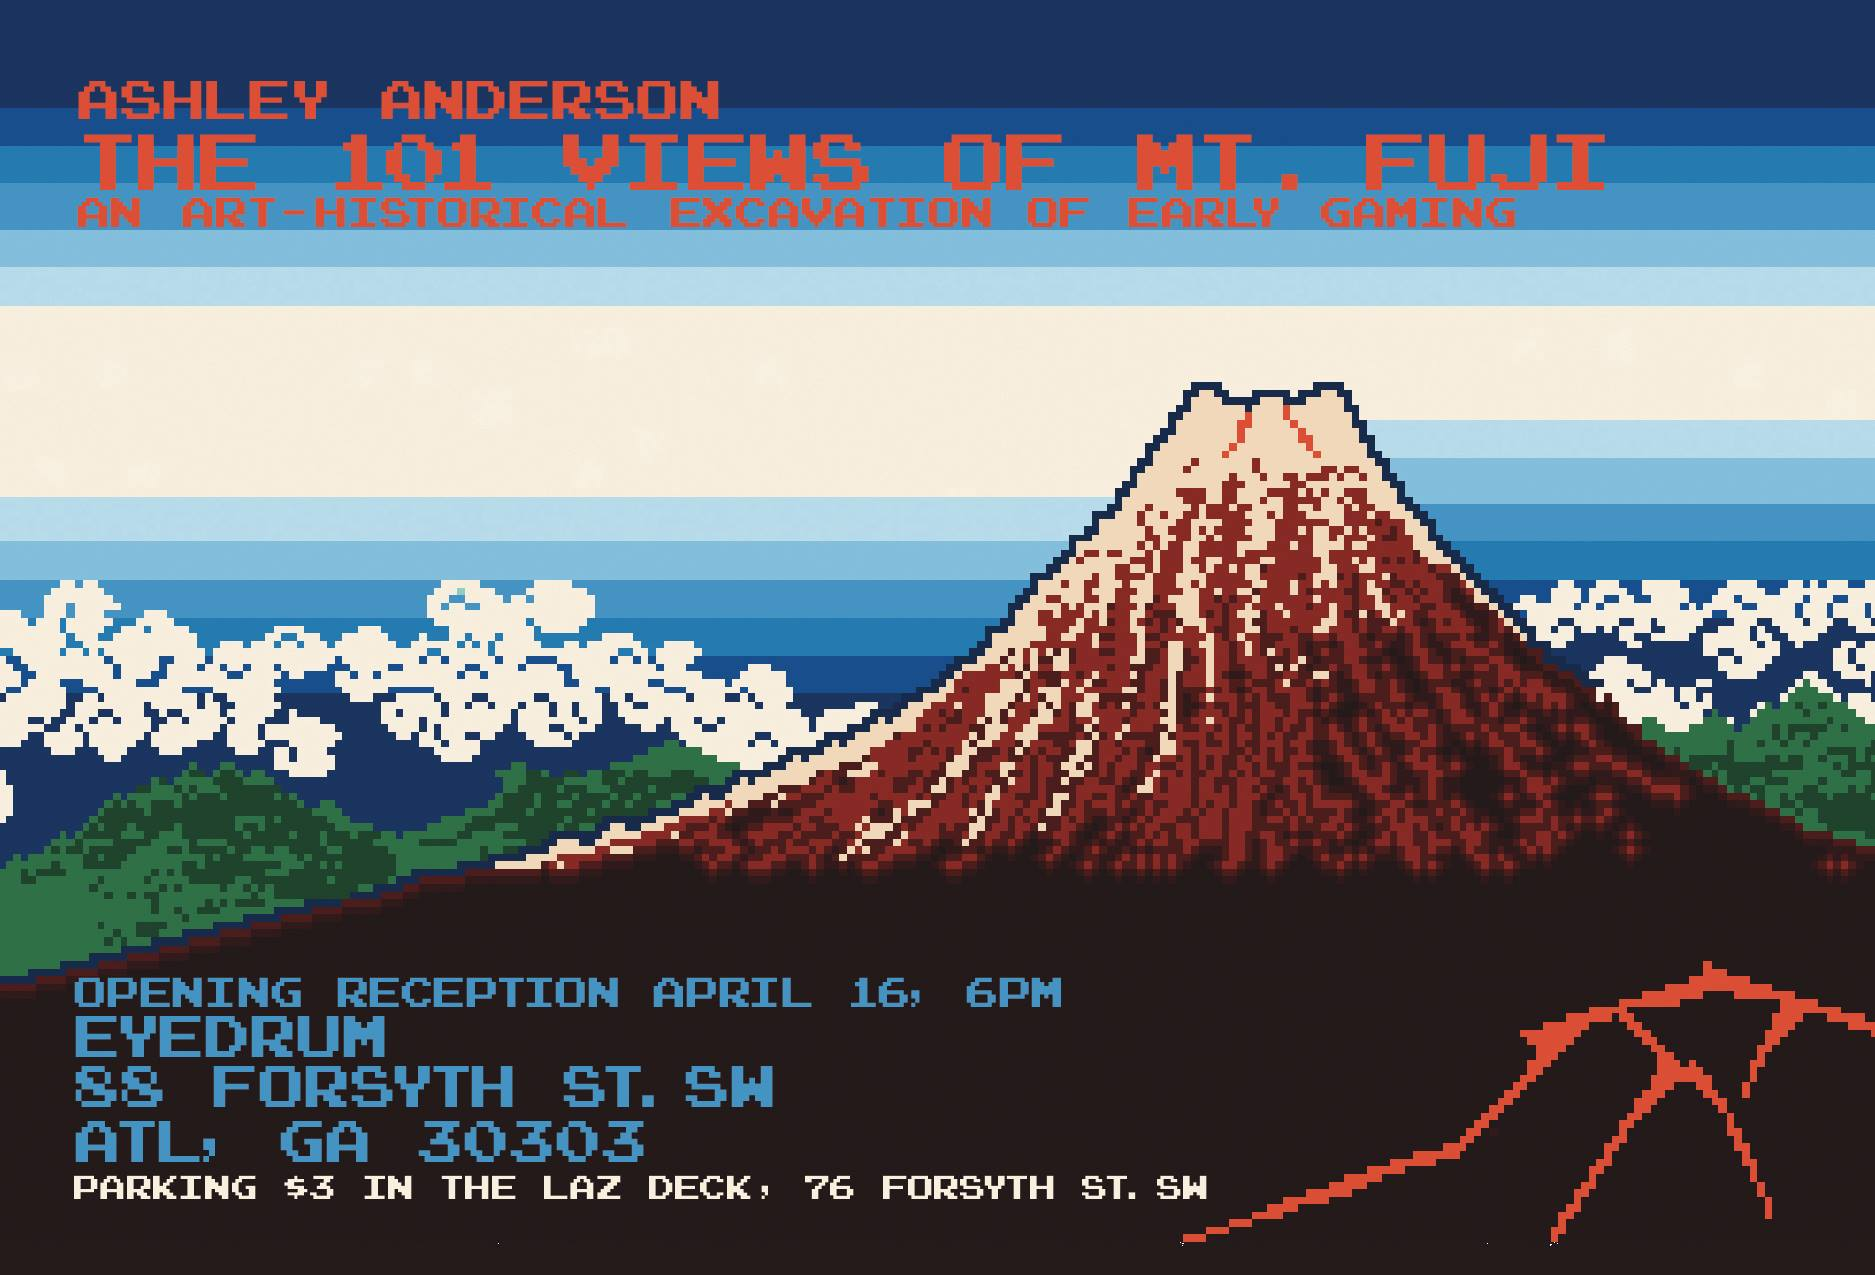 Ashley Anderson's solo exhibition documenting the representation of Mt. Fuji through the annals of video game culture opens this Saturday at Eyedrum.